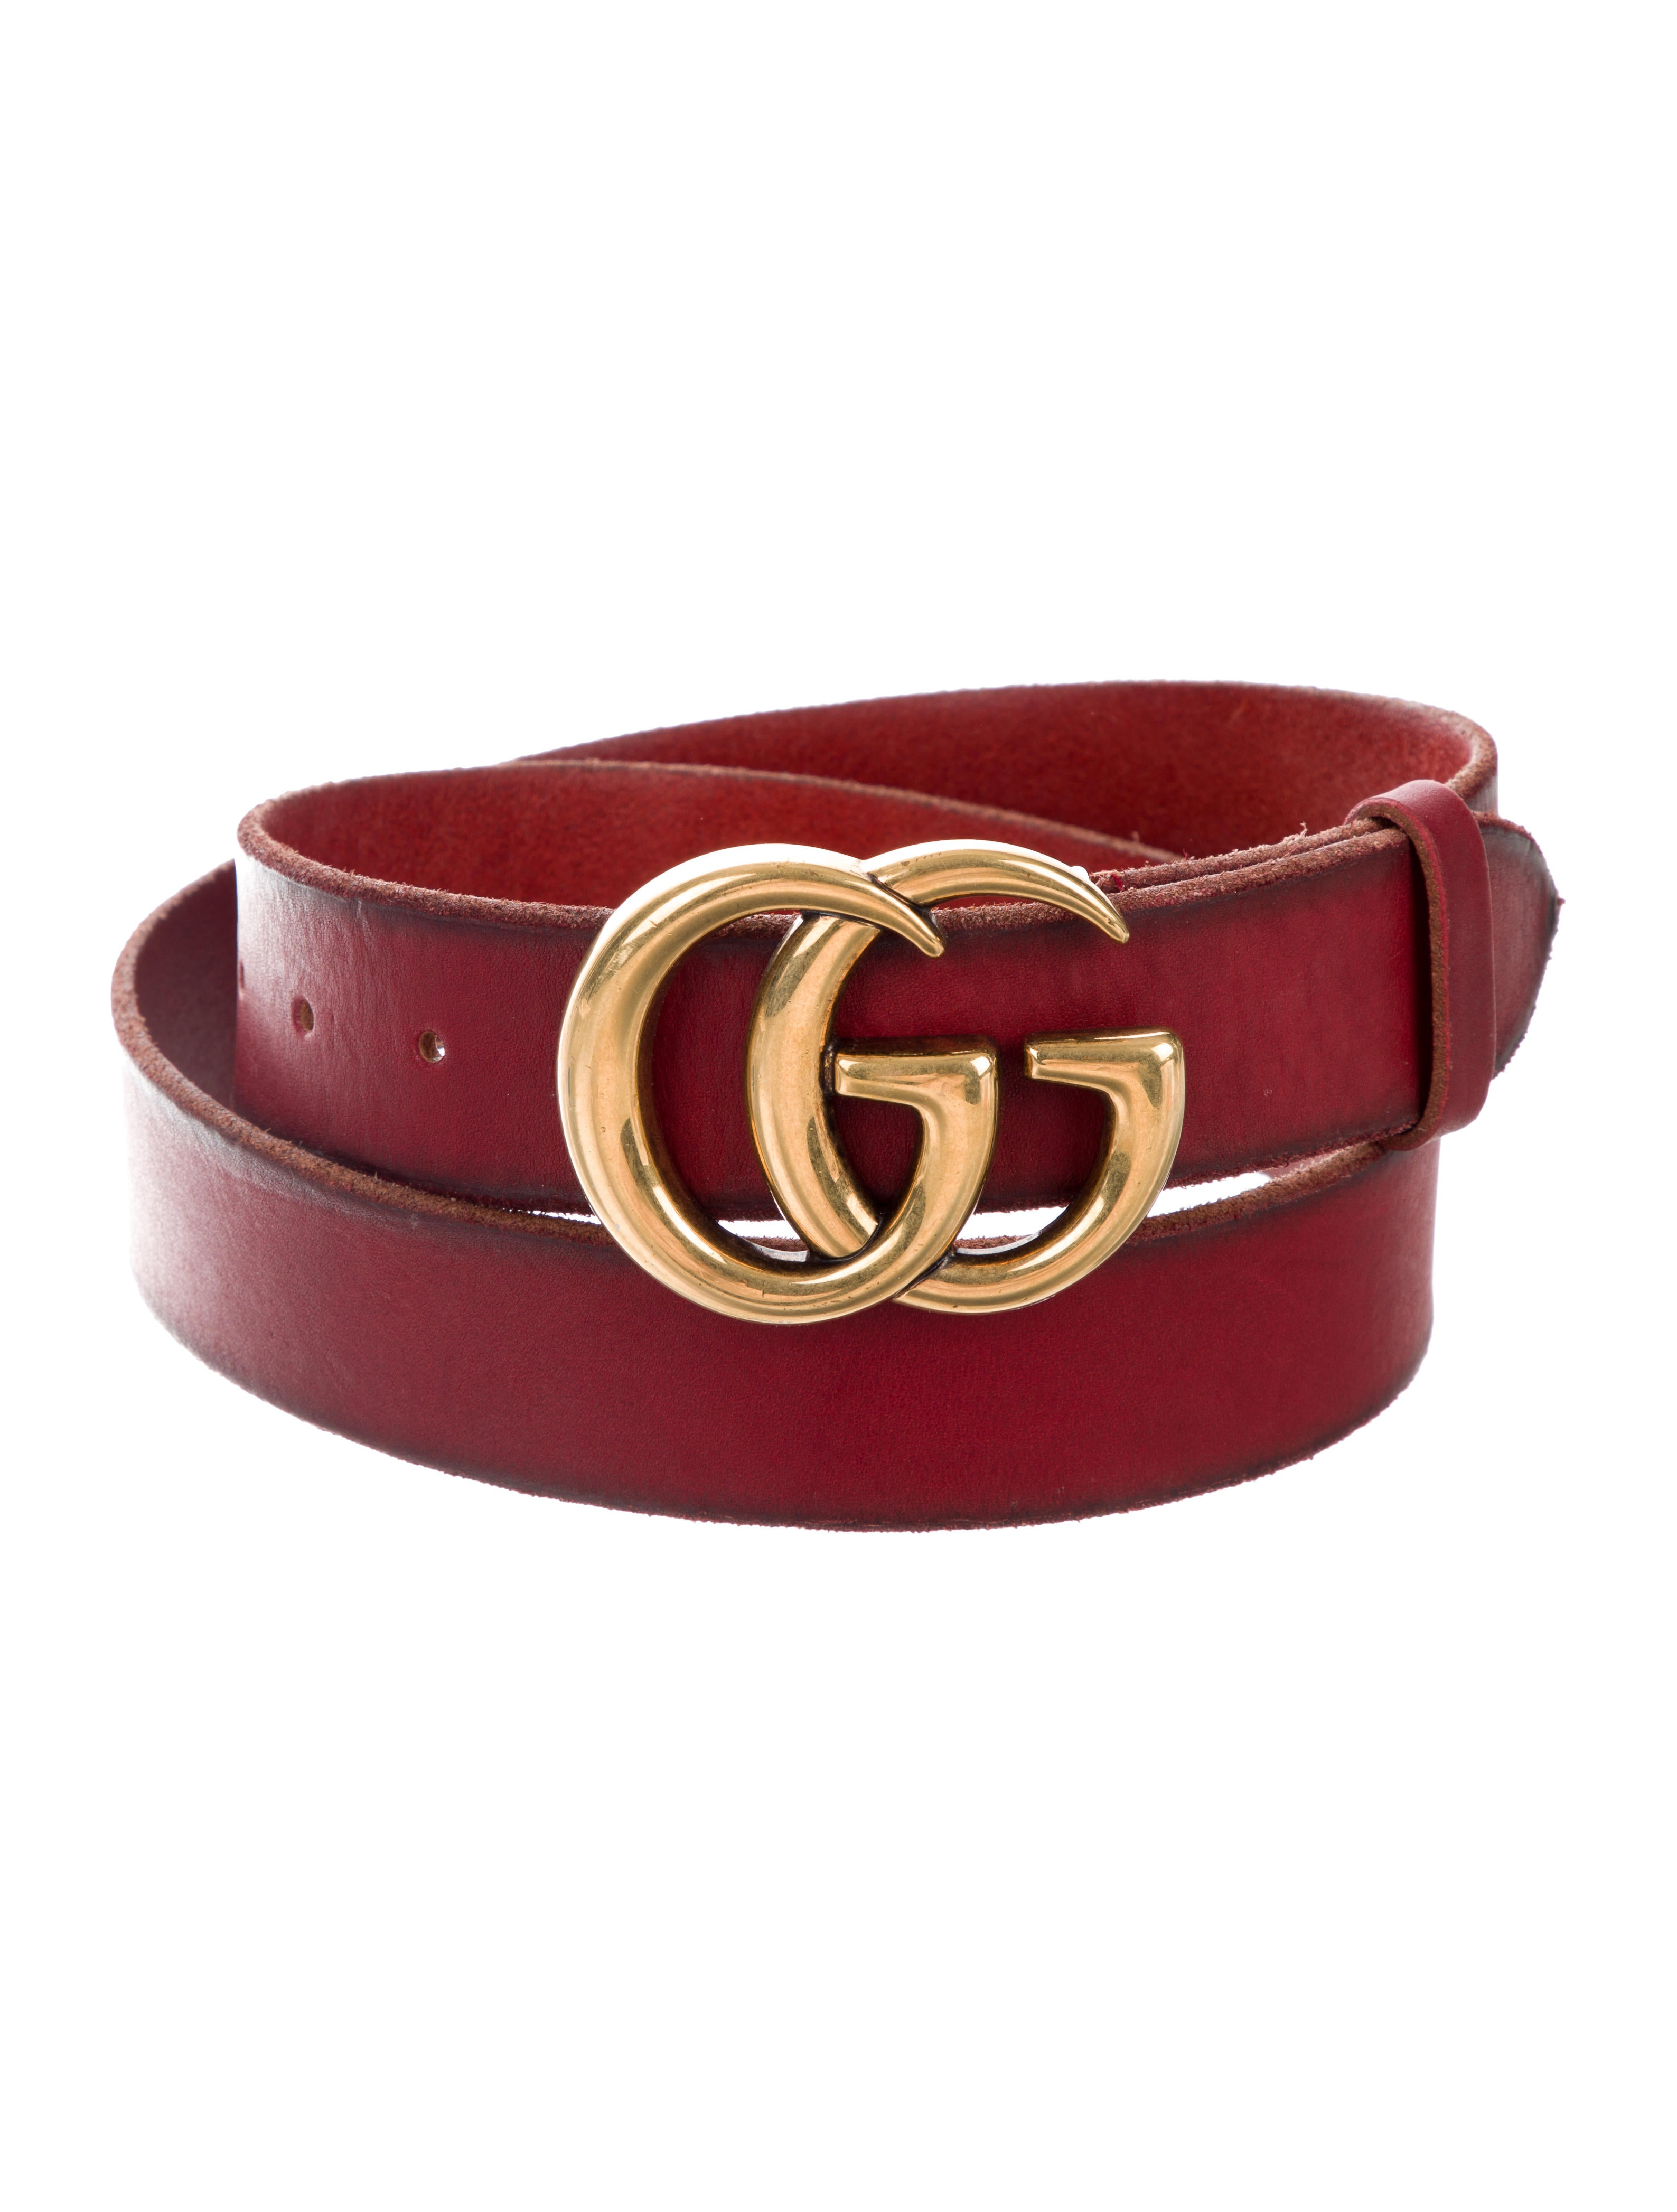 565243efc Gucci GG Leather Belt - Accessories - GUC311197 | The RealReal